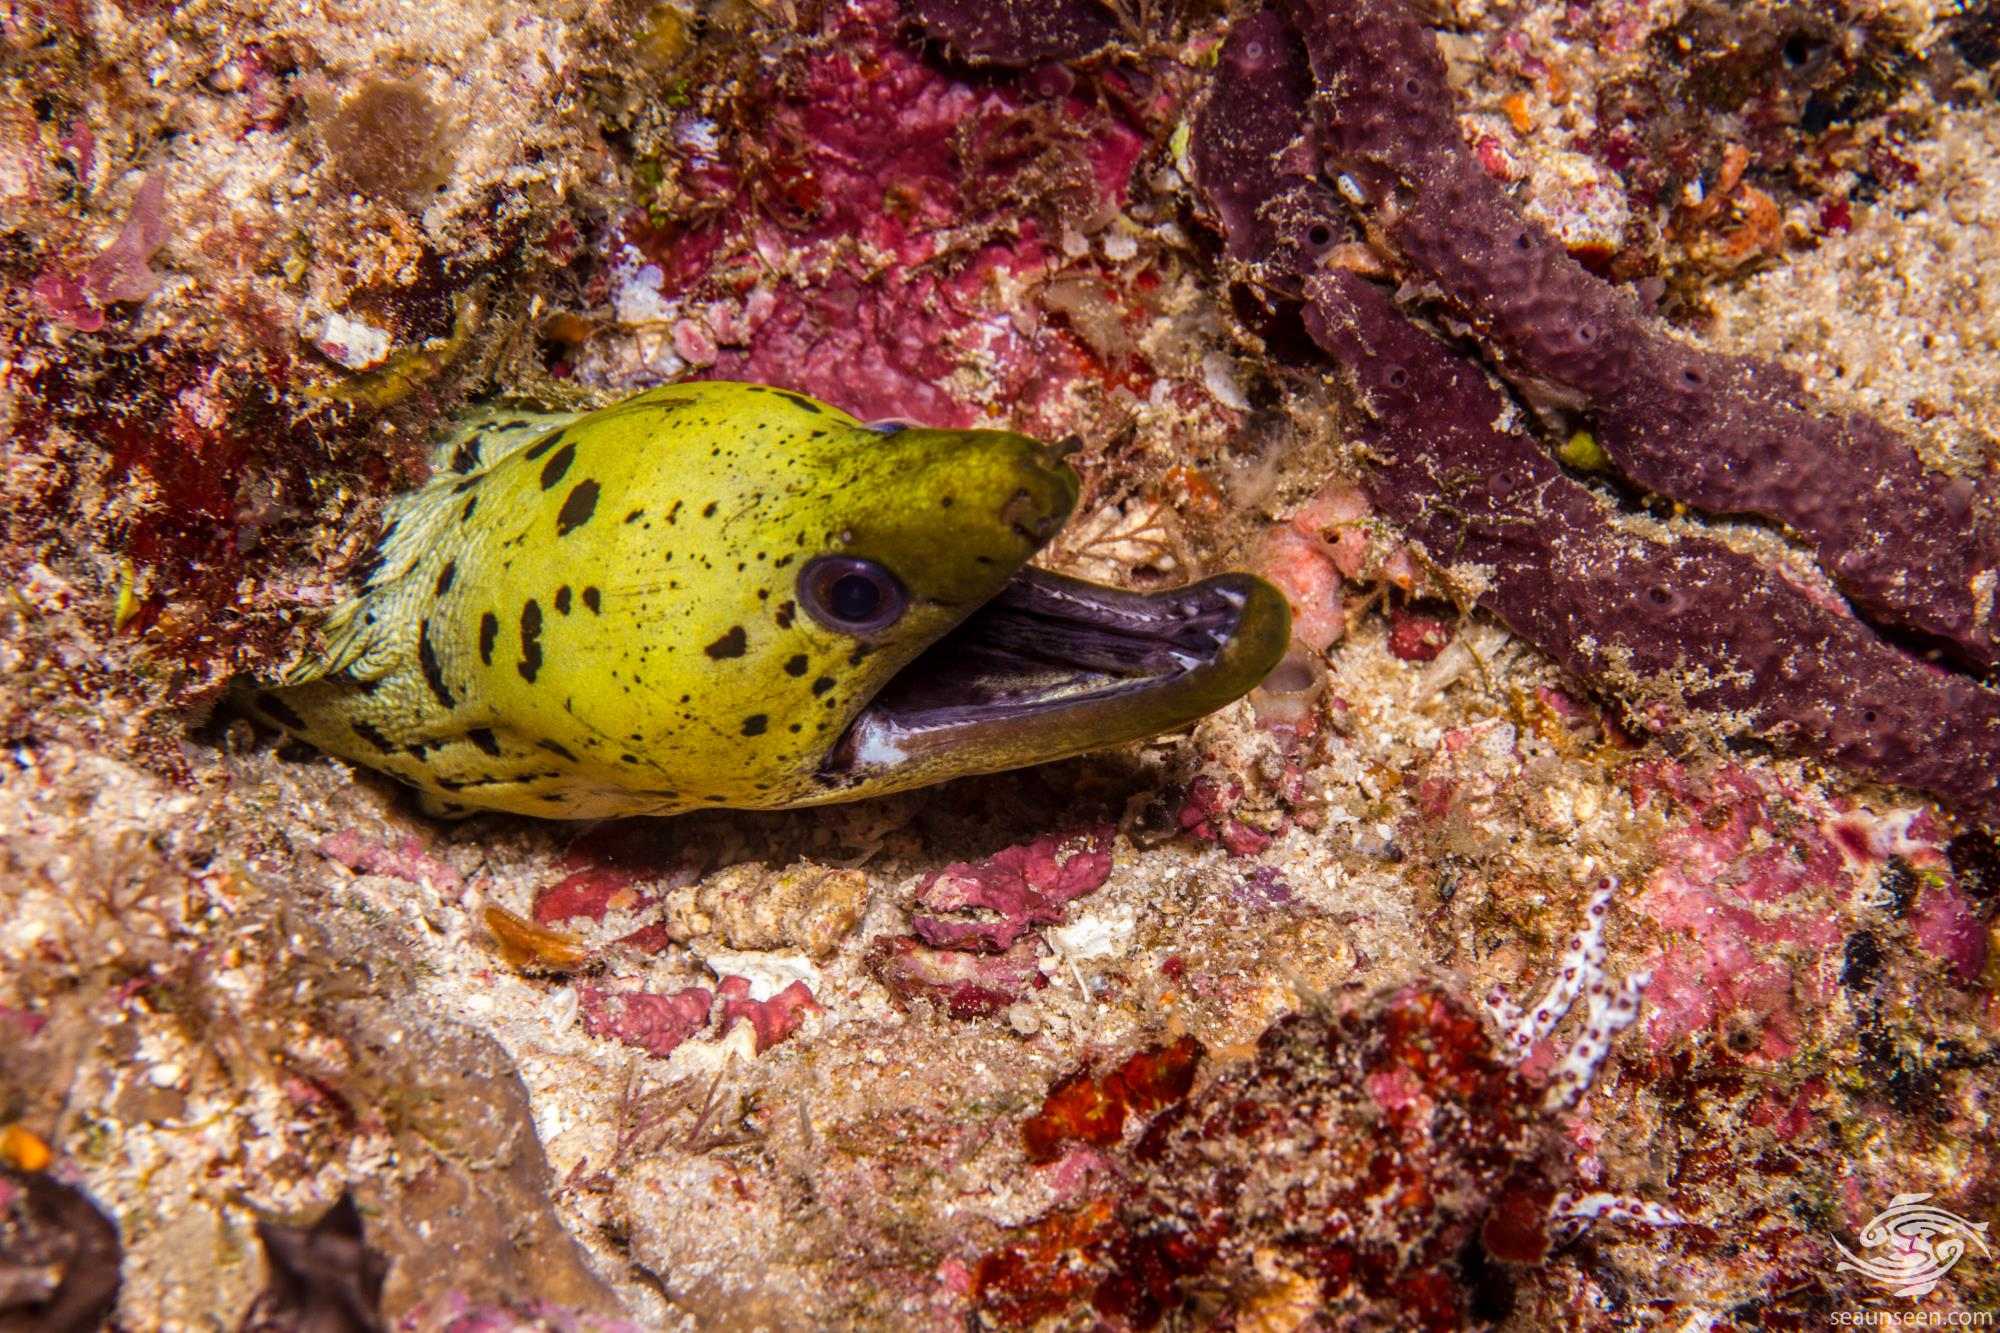 Fimbriated Moray Eel (Gymnothorax fimbriatus) is also known as the spot-face moray and the darkspotted moray